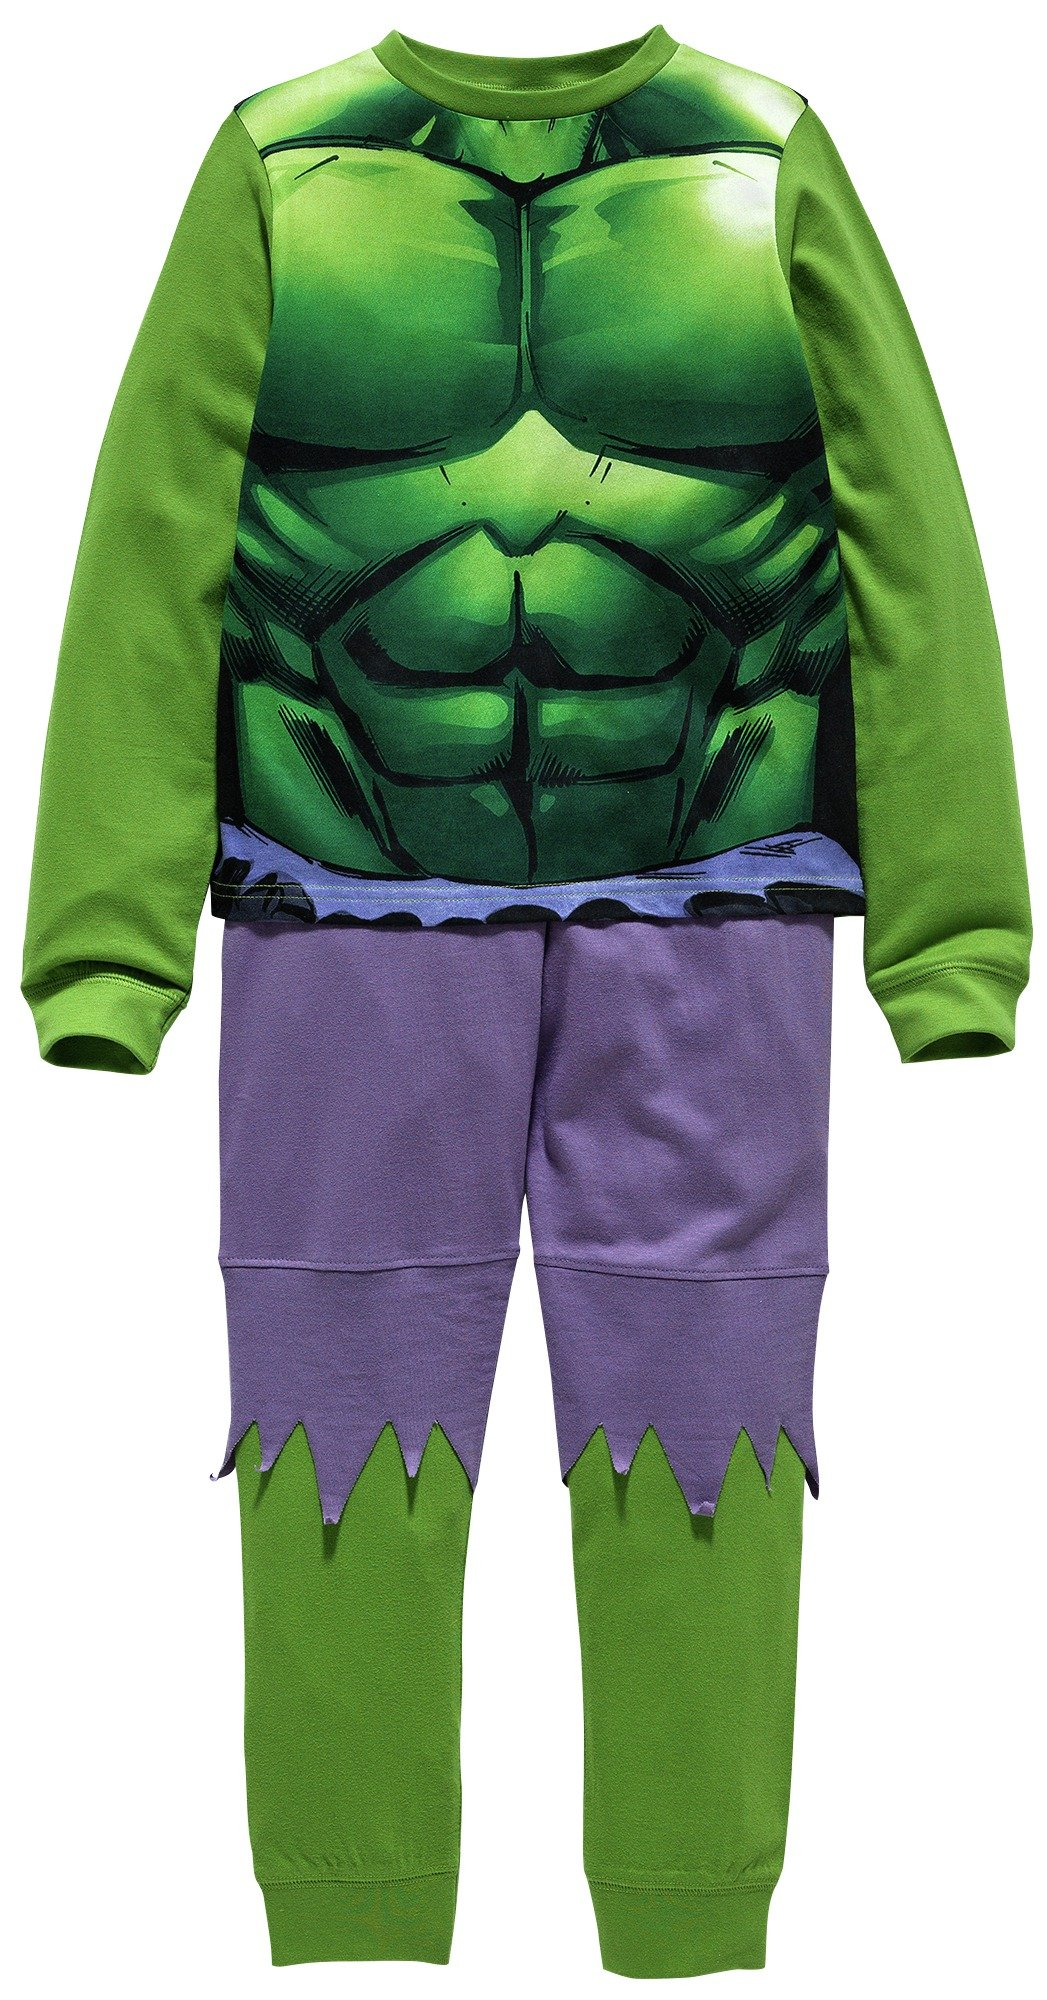 Image of Hulk Novelty Pyjamas - 7-8 Years.